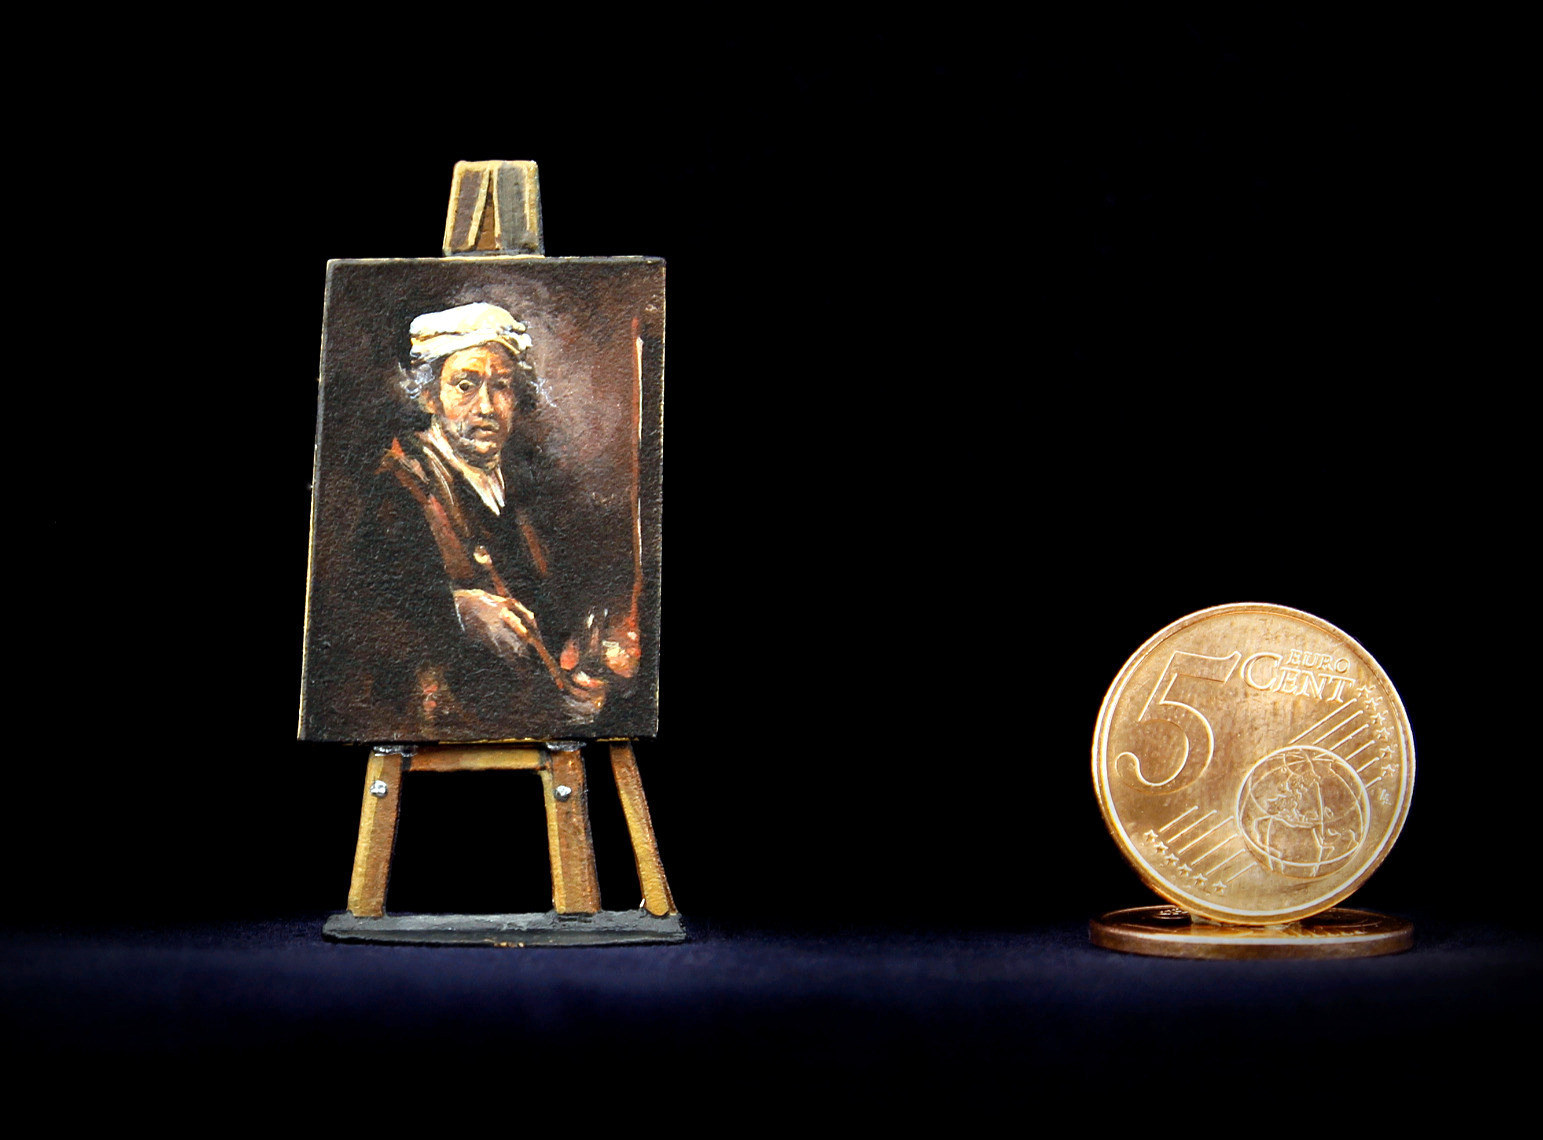 Rembrandt_edited_edited